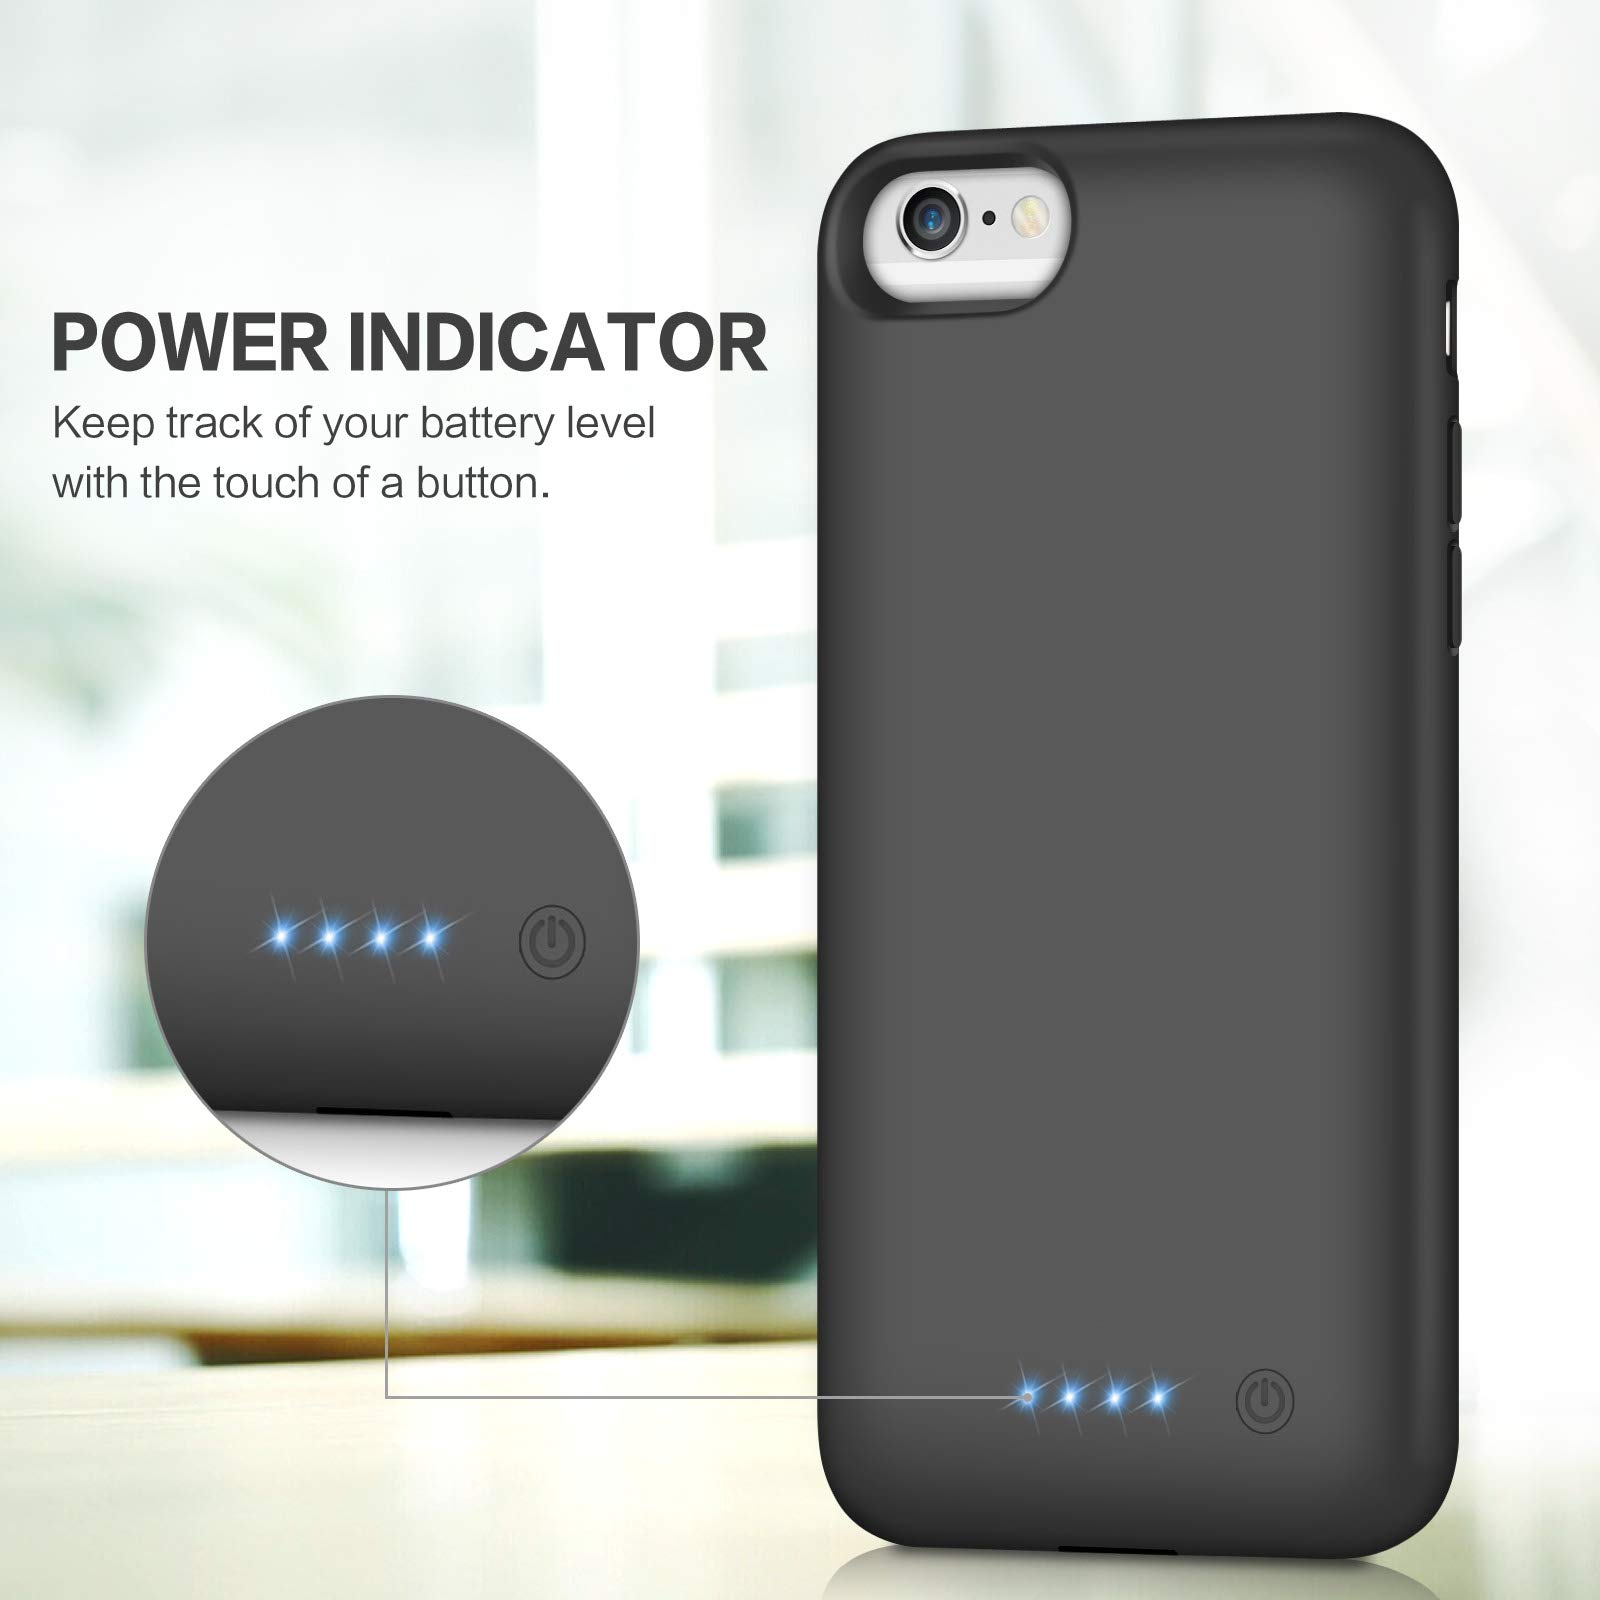 Battery Case for iPhone 6S 6,Upgraded HETP 6000mAh Rechargeable Charging Case for iPhone 6 External Battery Pack for iPhone 6S Charger Cover Apple Portable Power Bank [4.7 inch]- Black by HETP (Image #3)